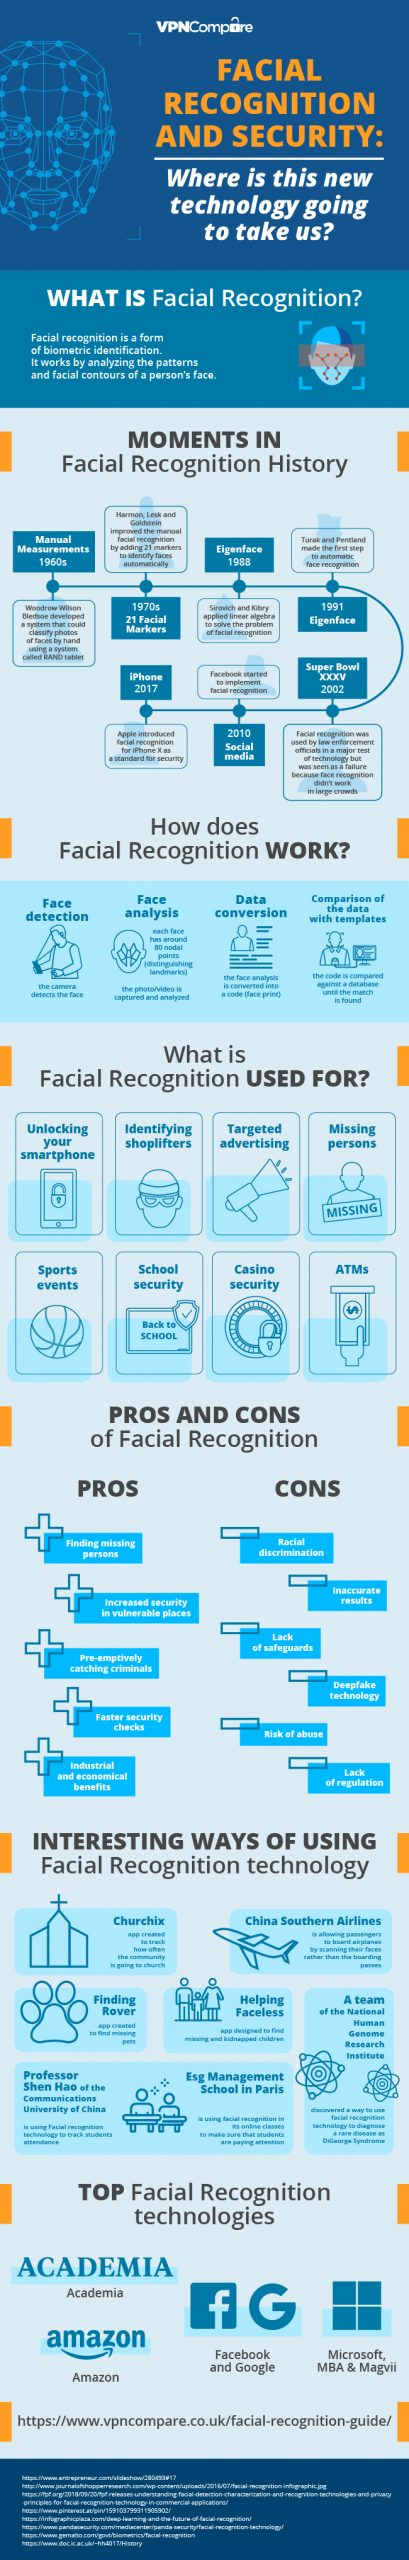 Is Your Data Protected While Using Face ID Recognition?